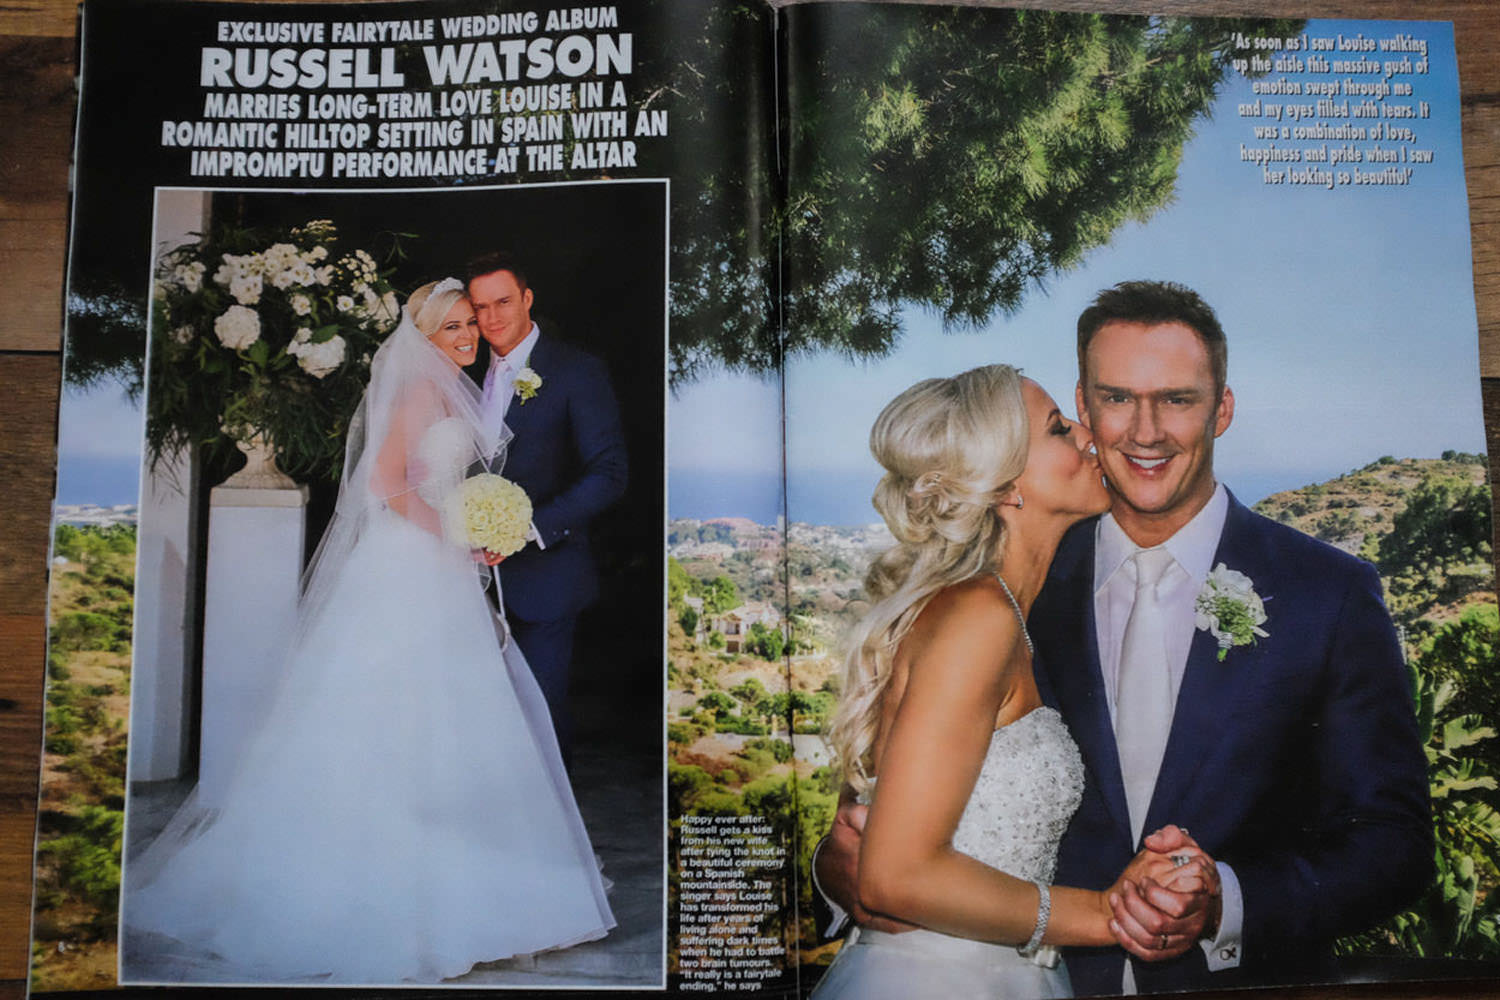 Lancashire celebrity wedding photographer featured in Hello! Magazine Russell Watson wedding by Wes Simpson